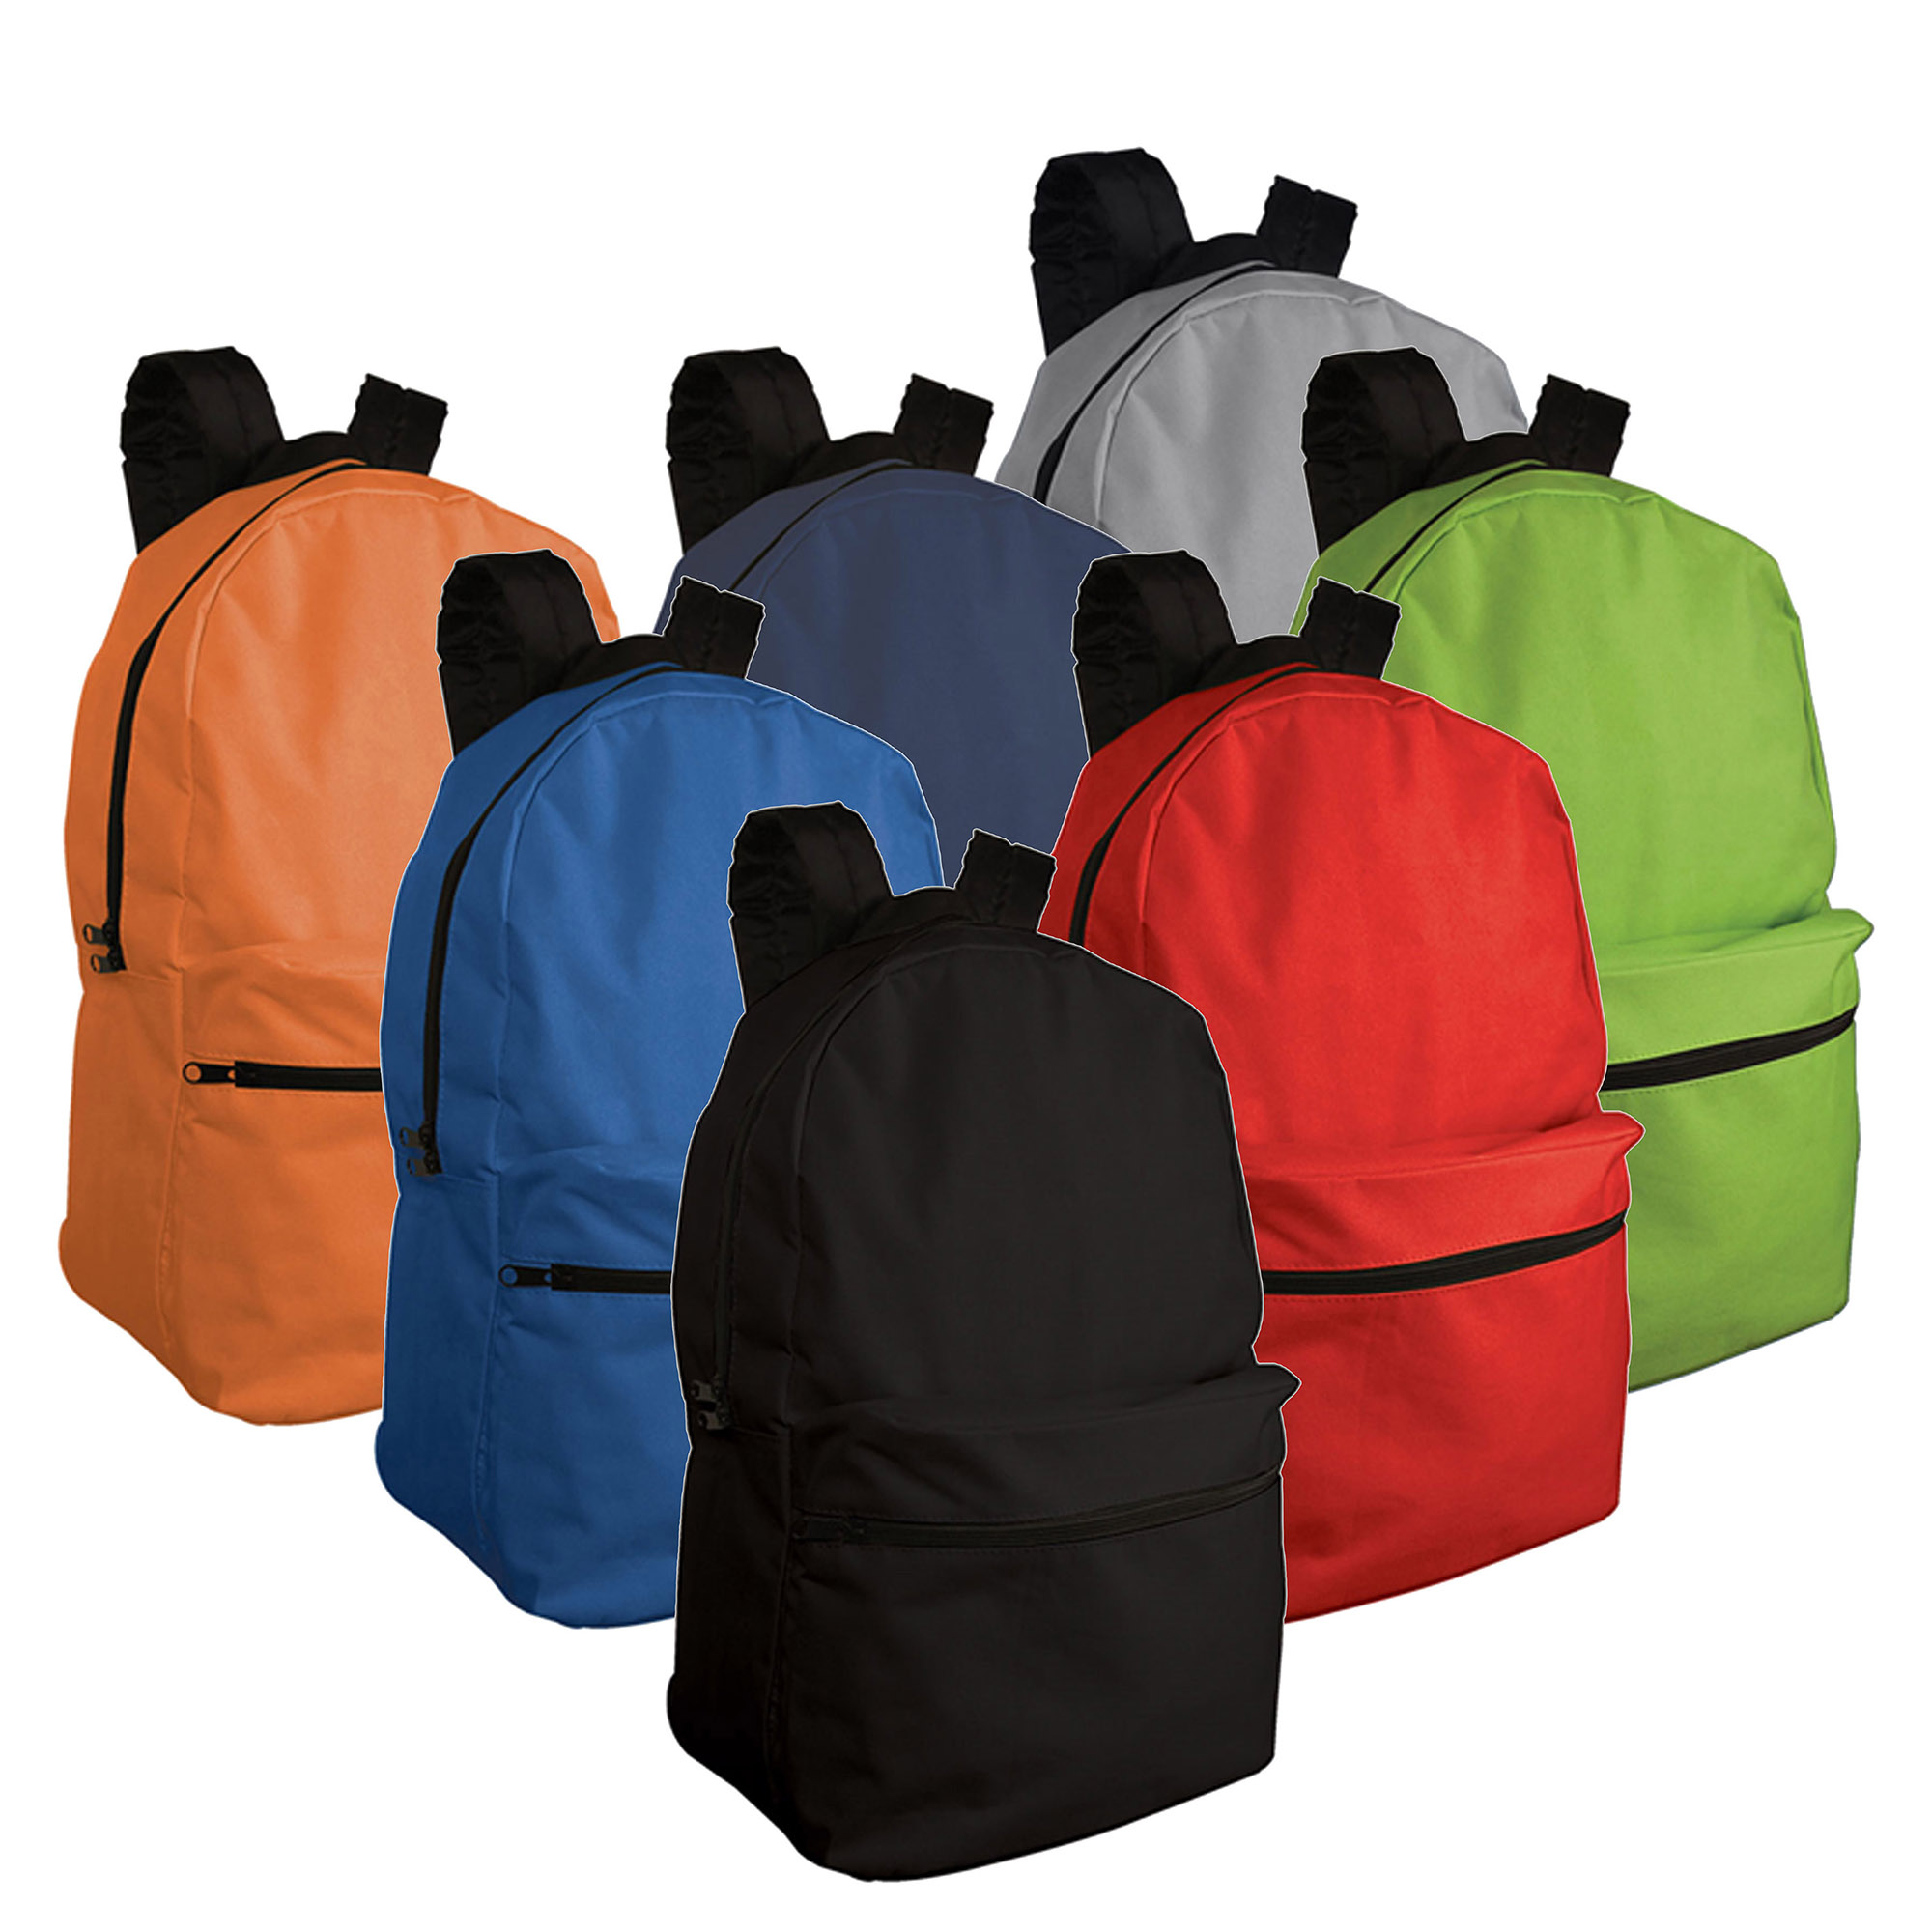 BACKPACK - 1 Colour Print, From $4.61